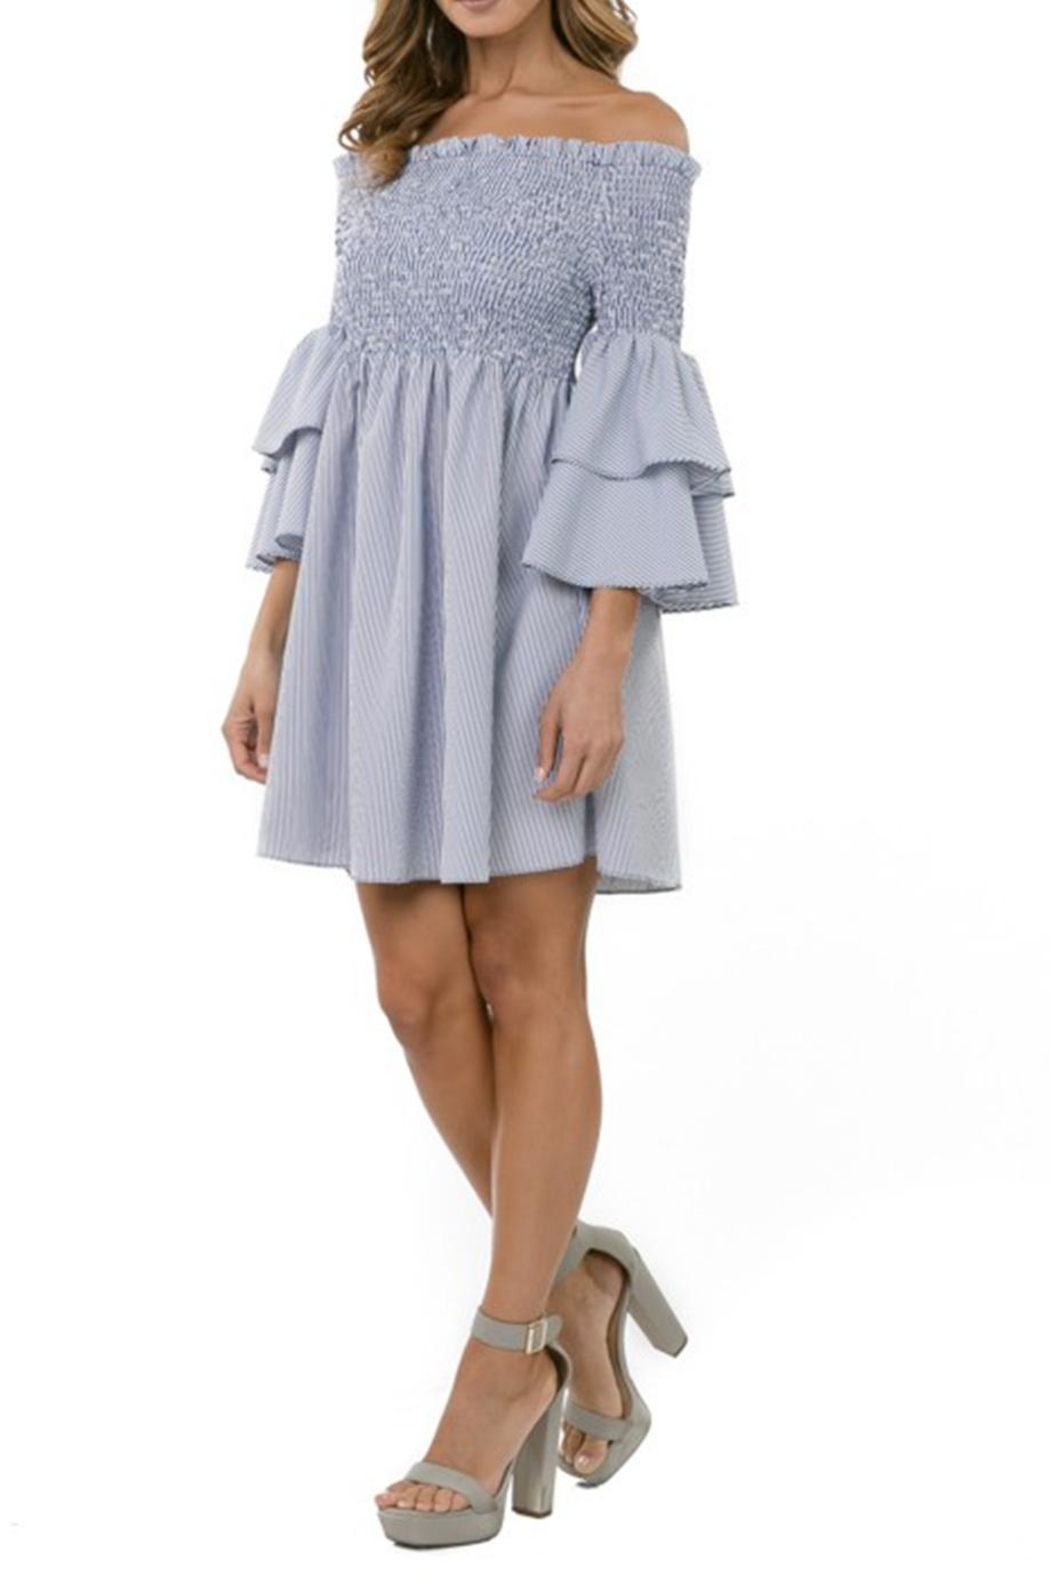 cq by cq Off Shoulder Dress - Side Cropped Image